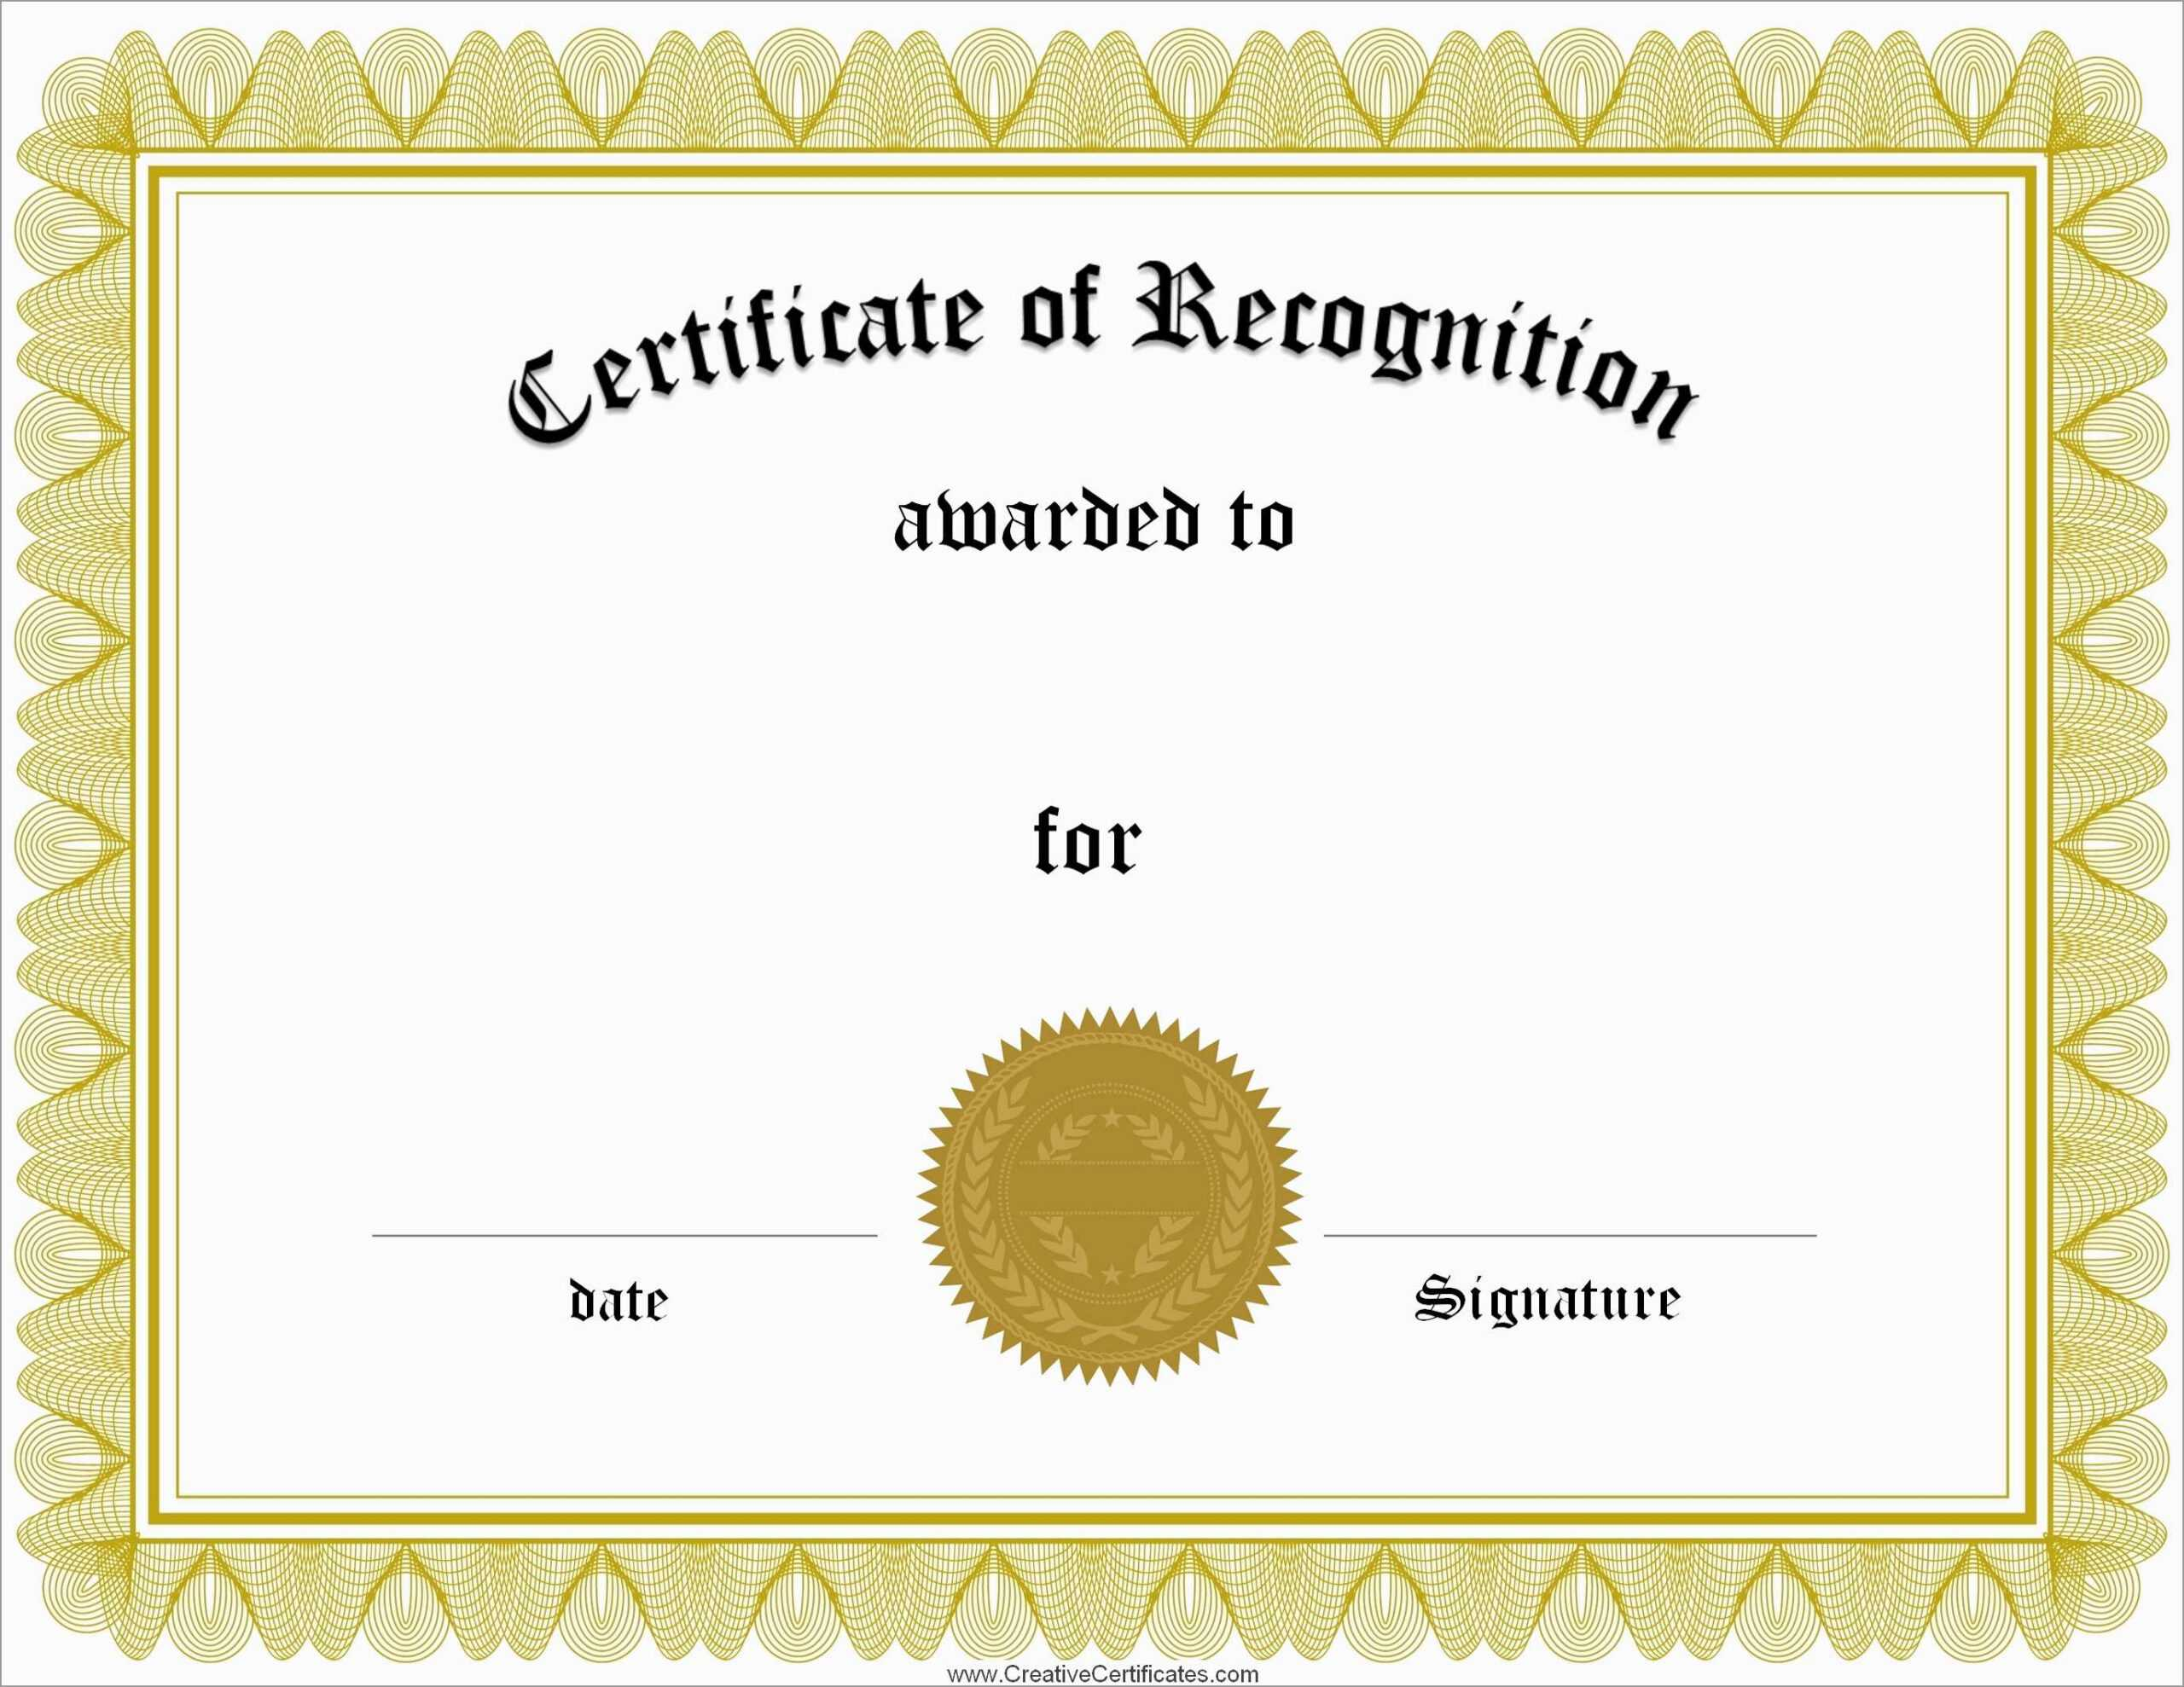 025 Template Ideas Certificate Of Recognition Word Award Intended For Certificate Of Recognition Word Template